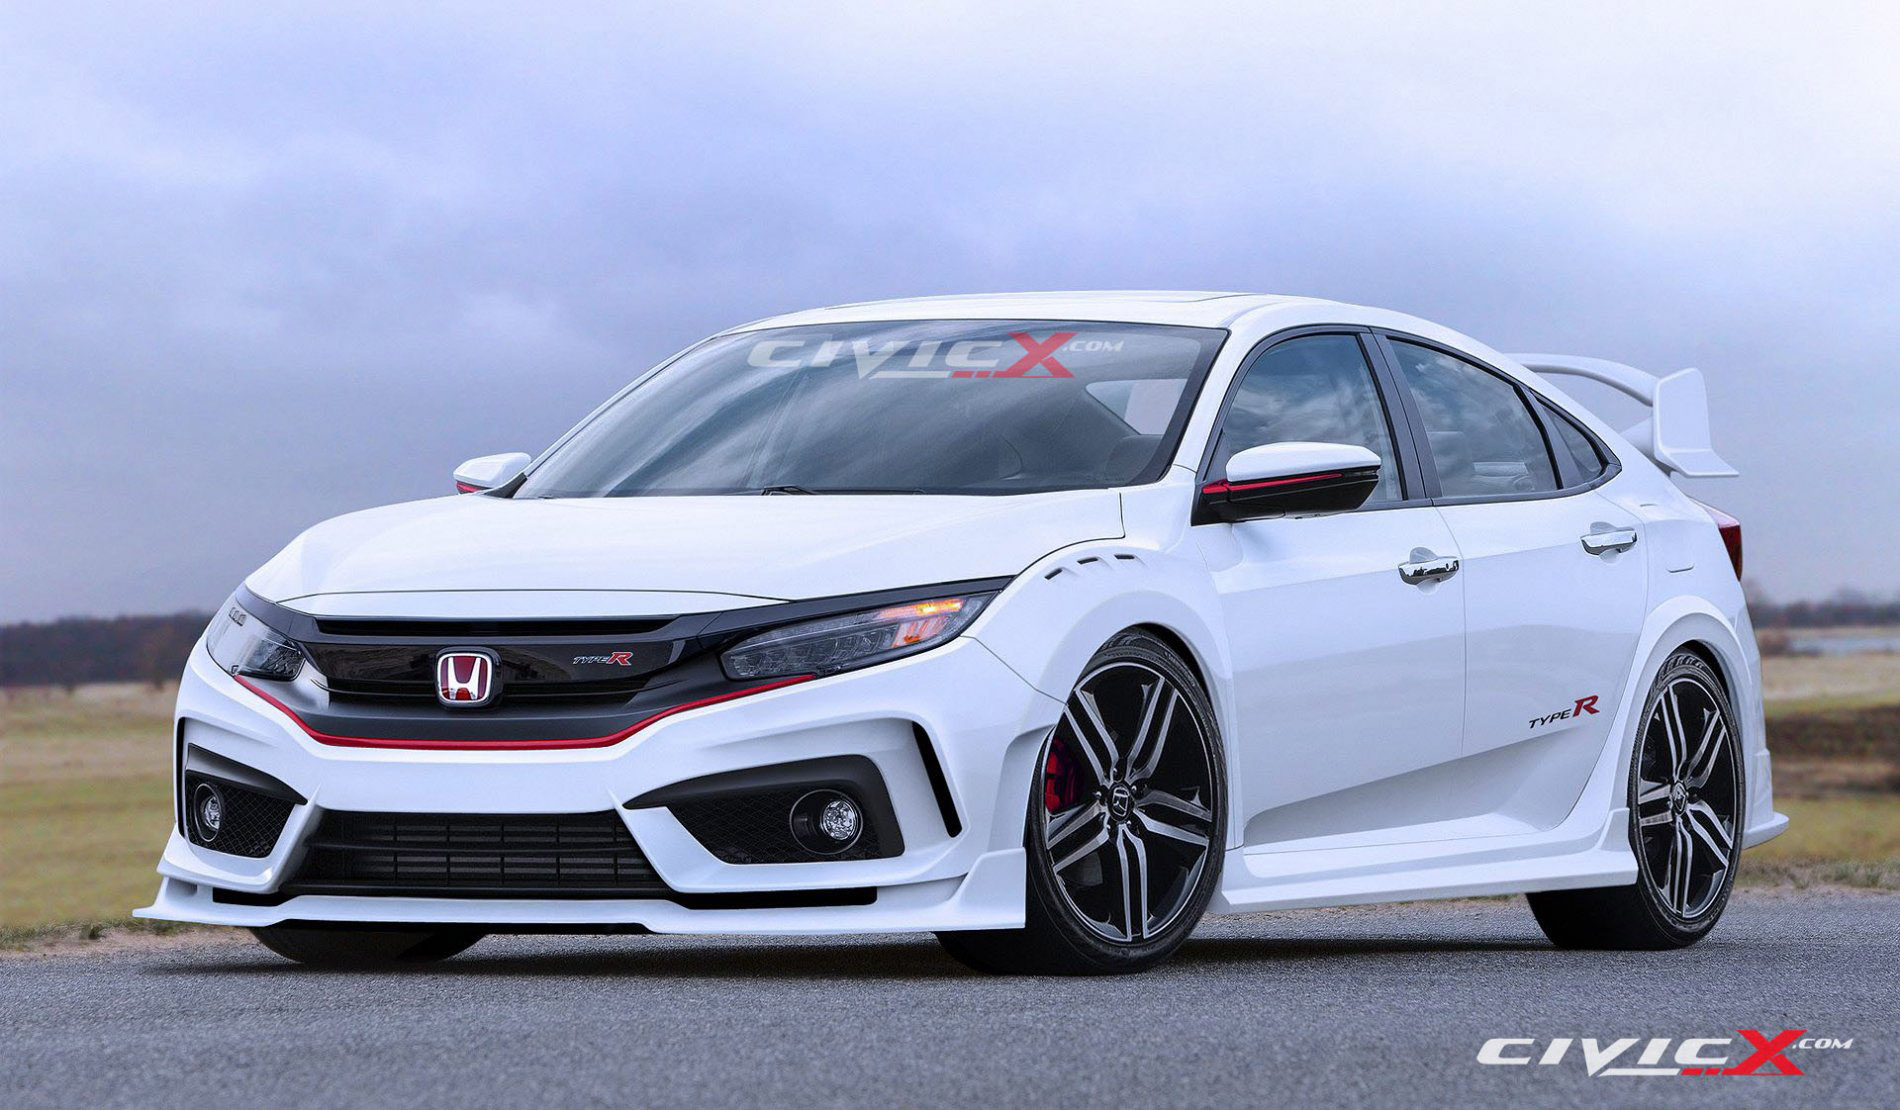 2017 Honda Civic Type R Hatchback Prototype By Civicx 2 Of 4